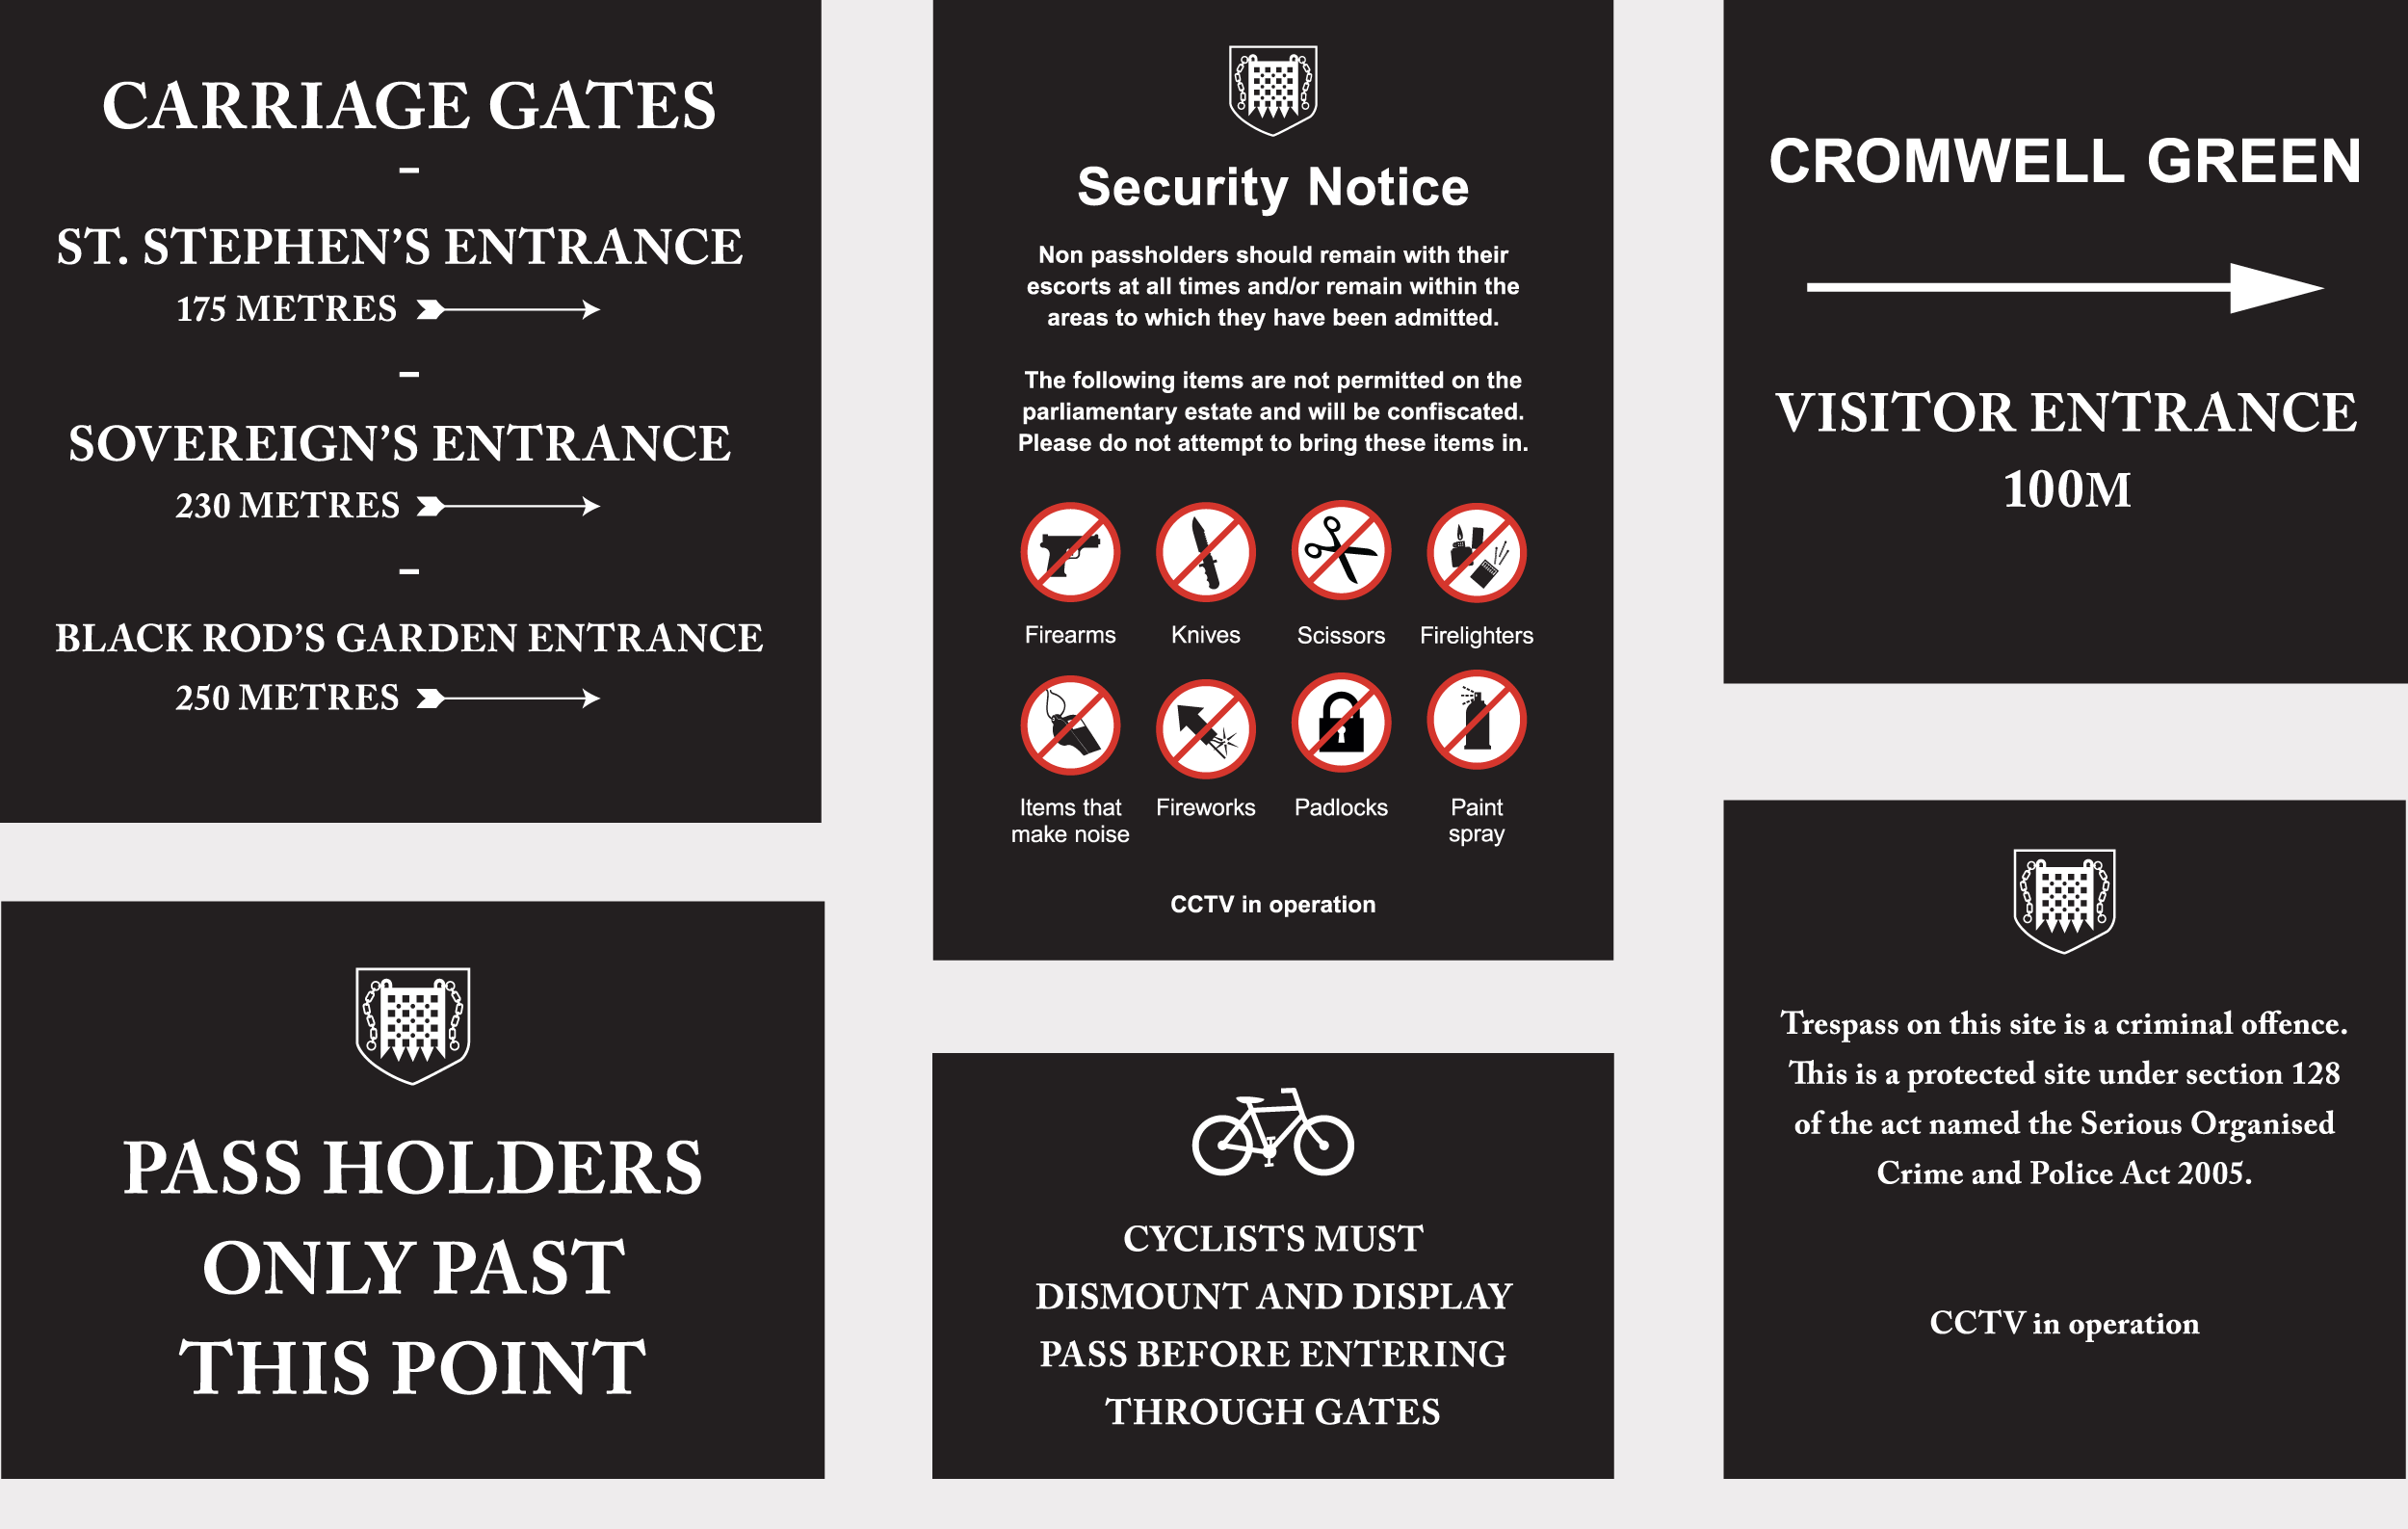 Houses of Parliament exterior signage, with alternative portcullis emblem for legal clearance.